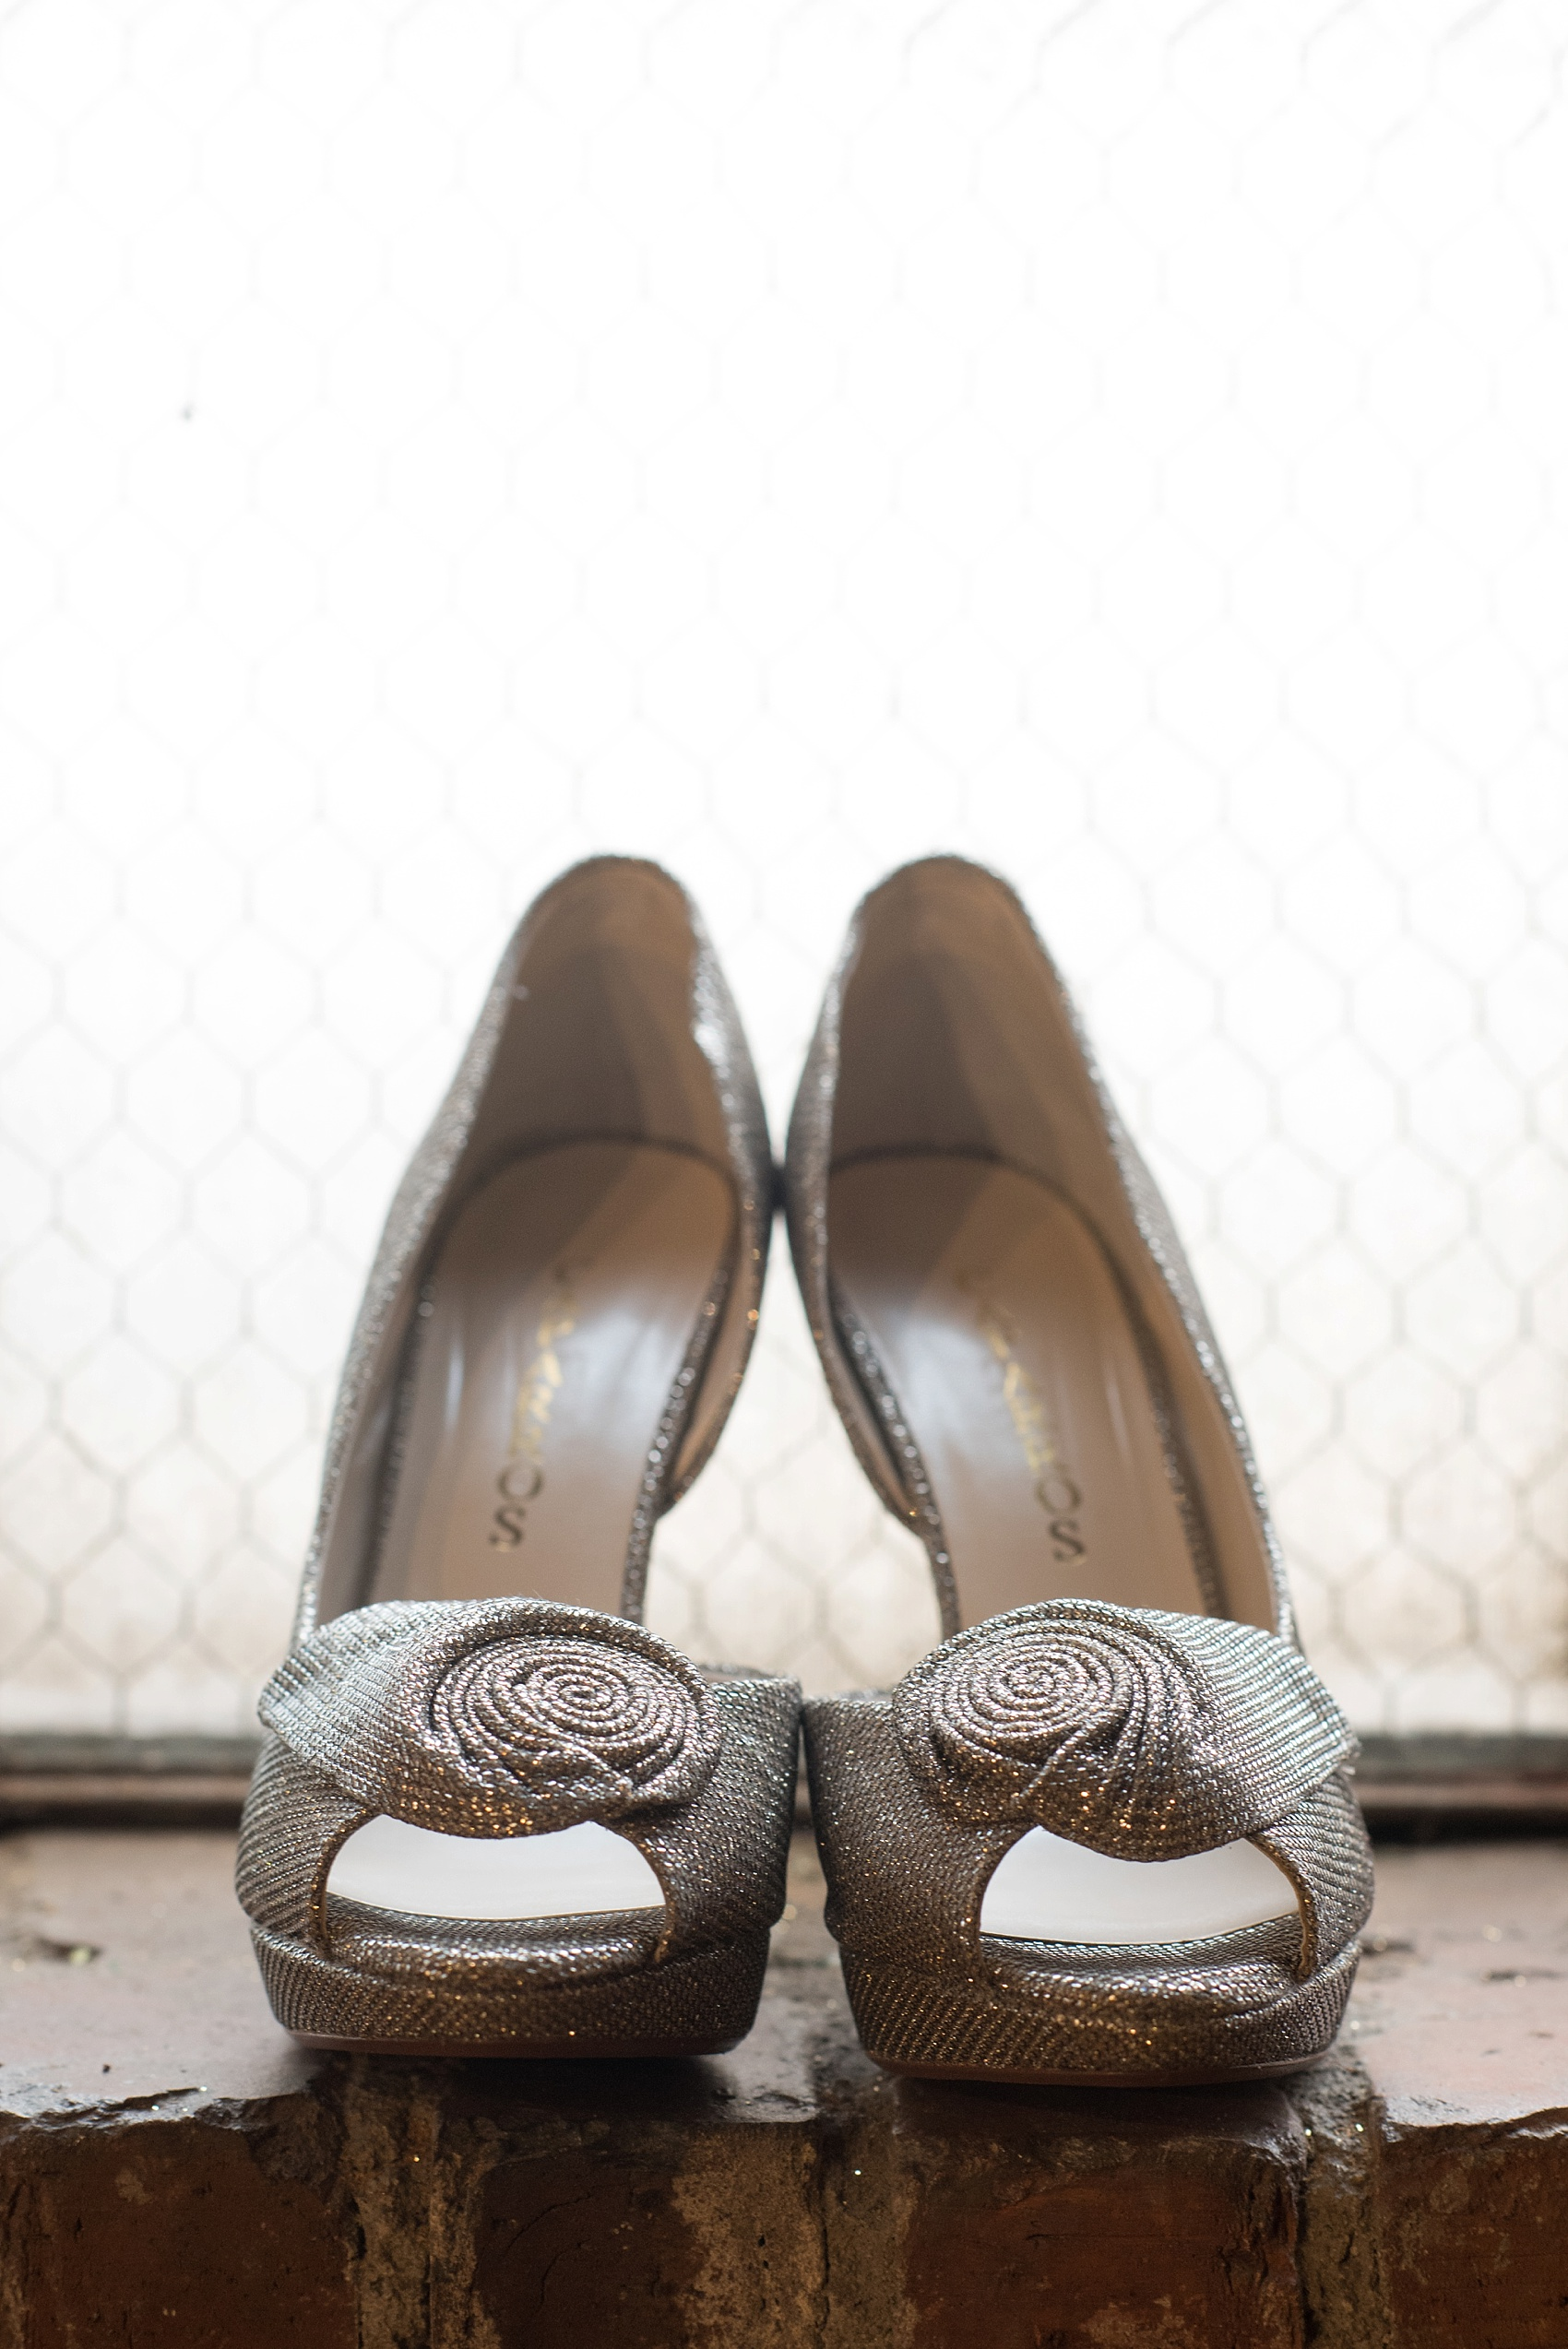 Raleigh wedding photographer Mikkel Paige Photography captures sparkly gold wedding shoes at The Stockroom.